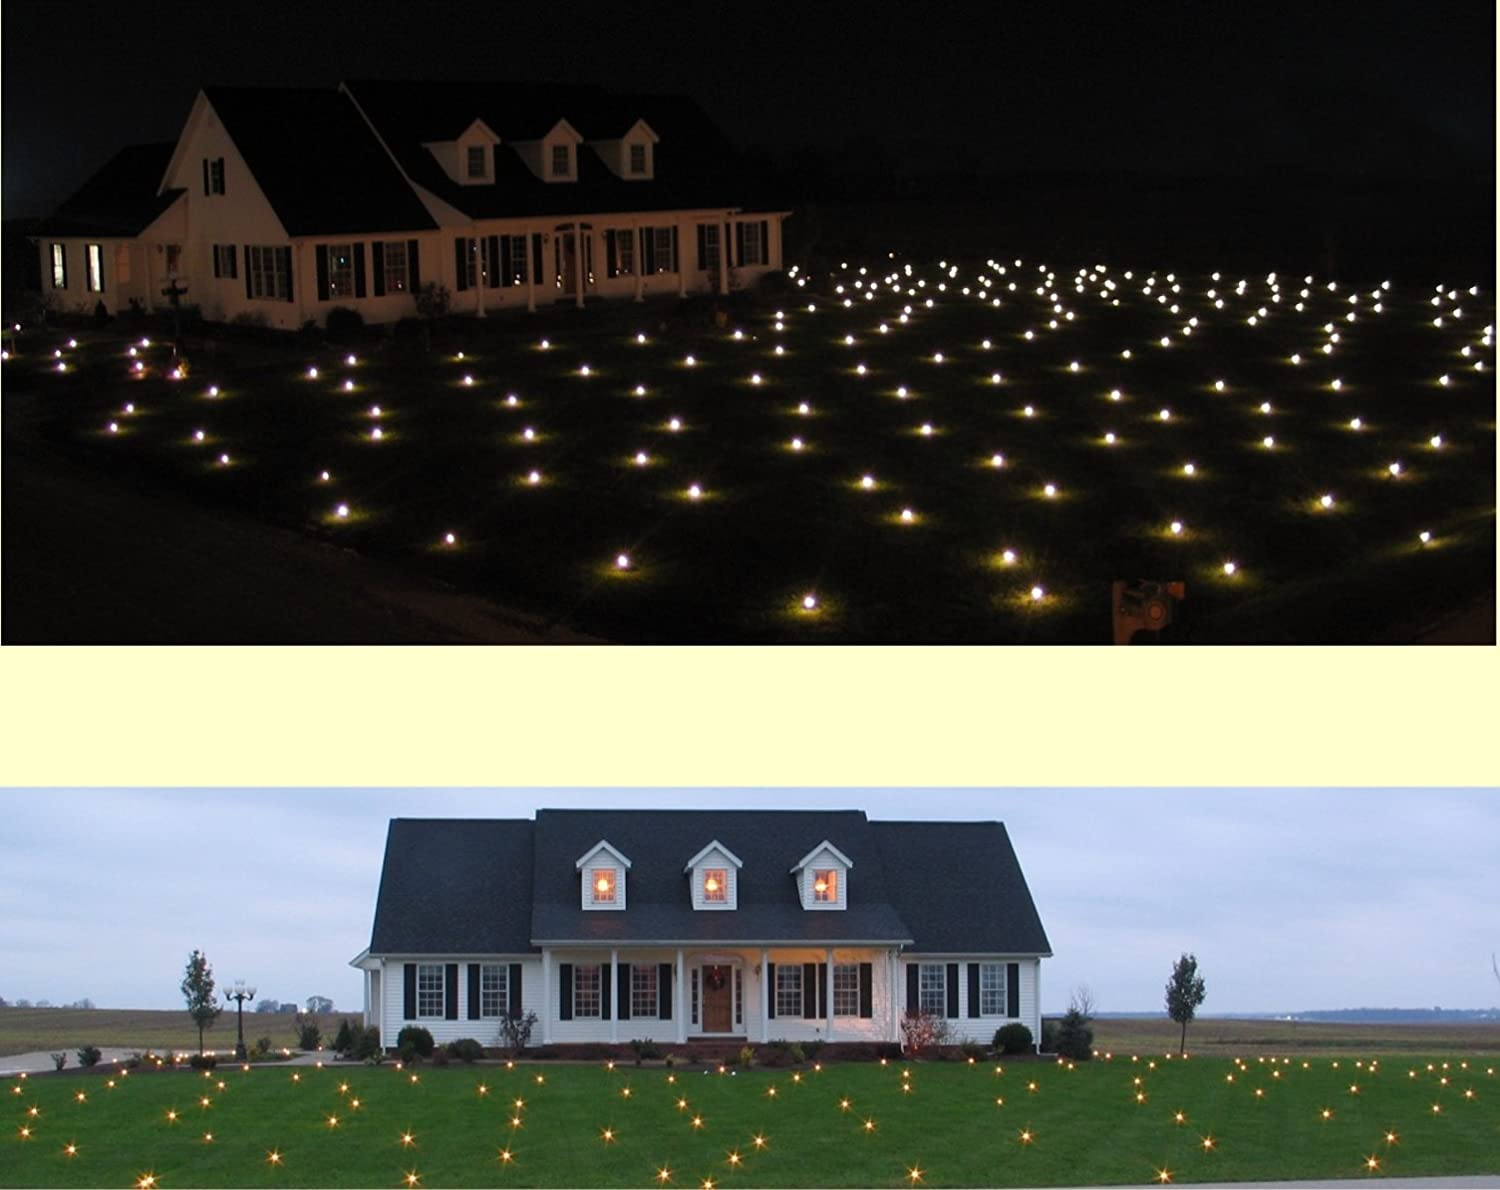 Warm White Outdoor Christmas Lights: Amazon.com : Lawn Lights Illuminated Outdoor Decoration, LED, Christmas,  36-08, Warm White : Patio, Lawn & Garden,Lighting